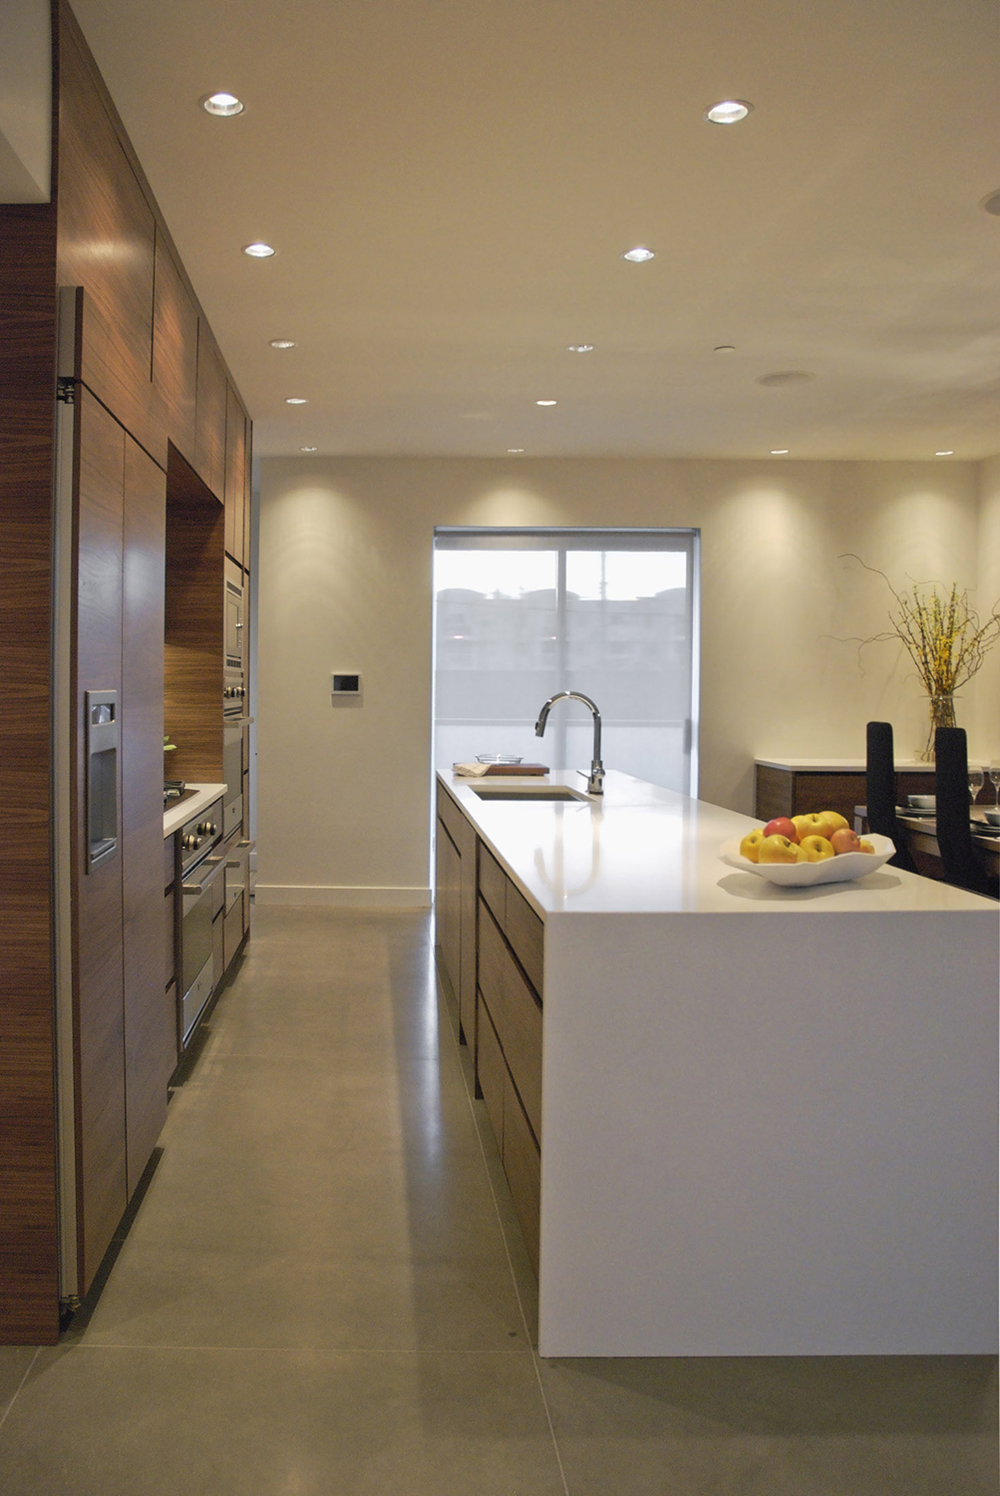 interior-doors-kitchen2.jpg